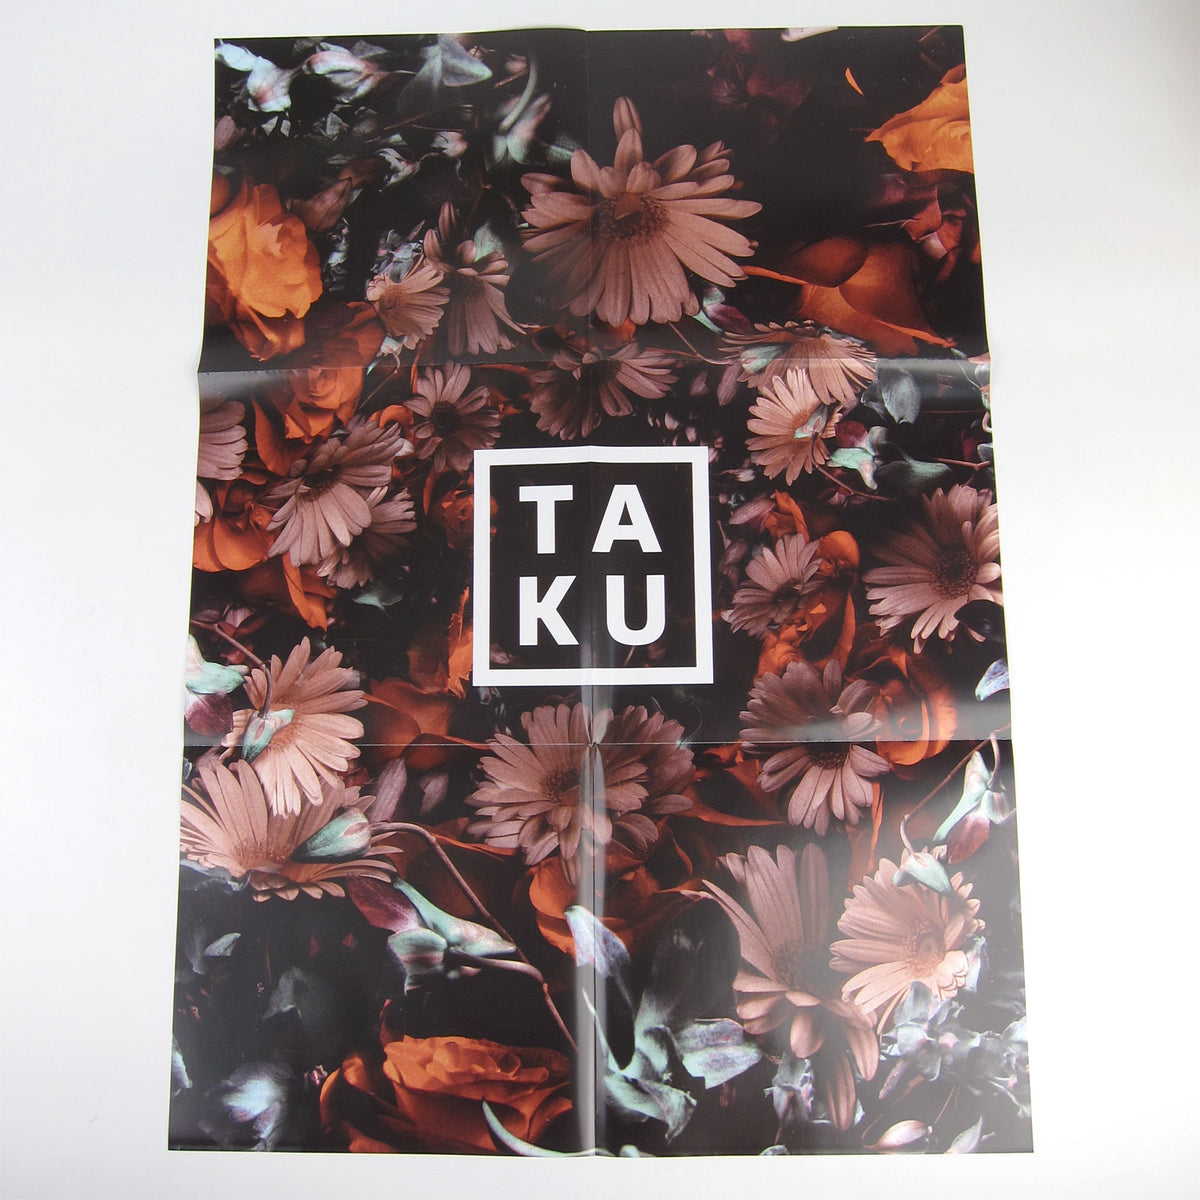 Ta-ku: Songs To Make Up To (Colored Vinyl) Vinyl LP